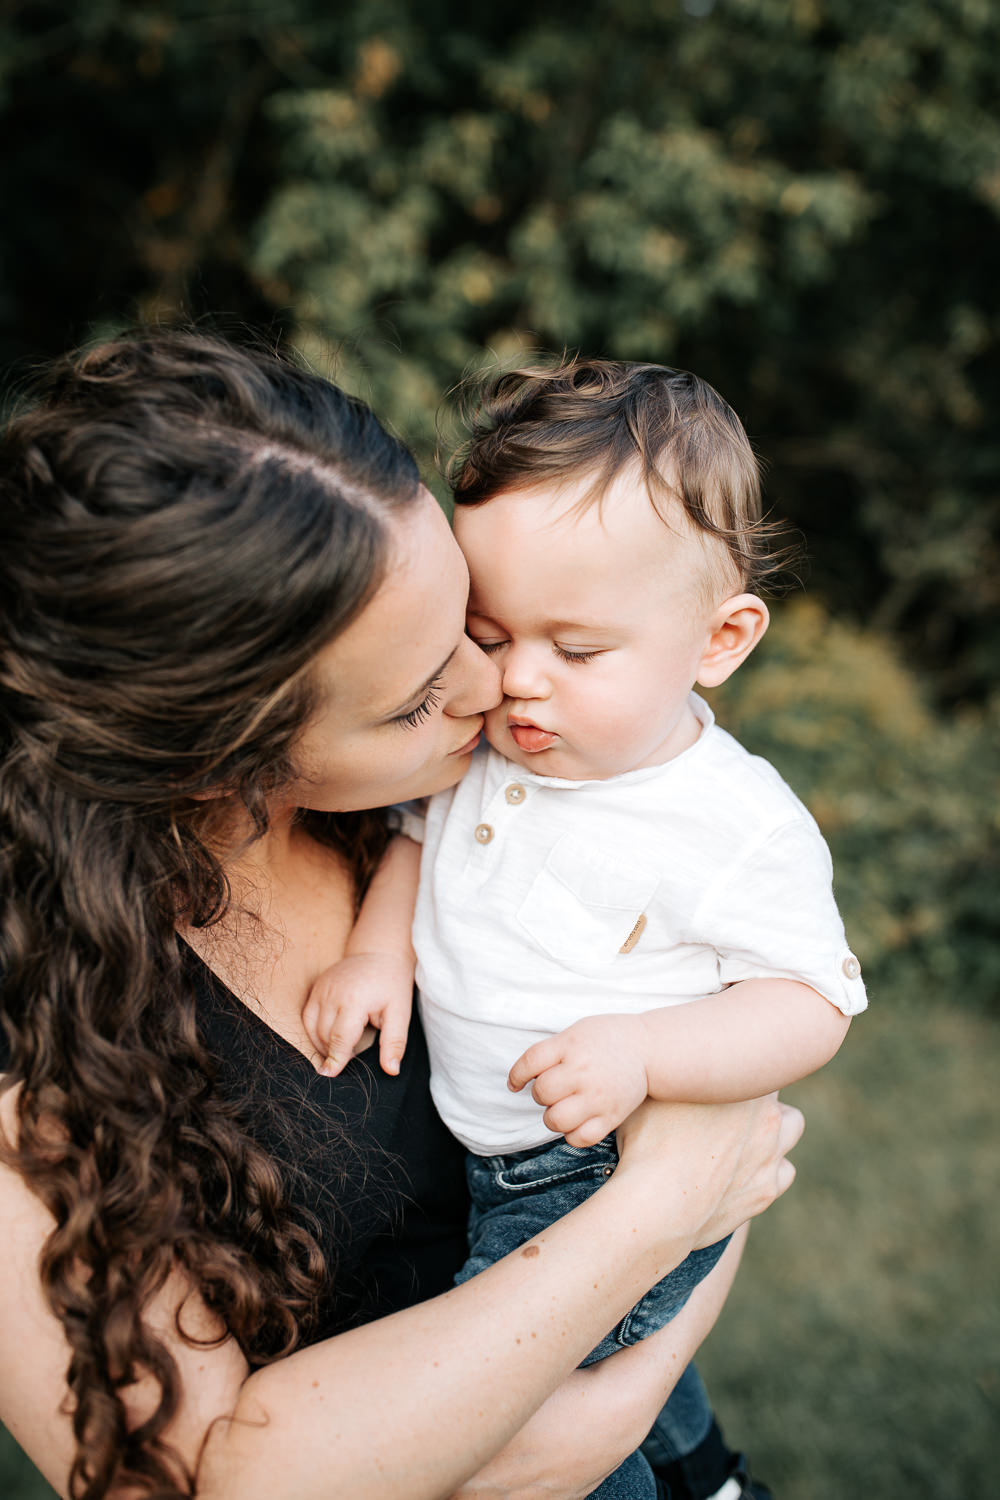 mom standing holding 9 month old baby boy with dark hair wearing white t-shirt and jeans, kissing son on cheek - Barrie Lifestyle Photography